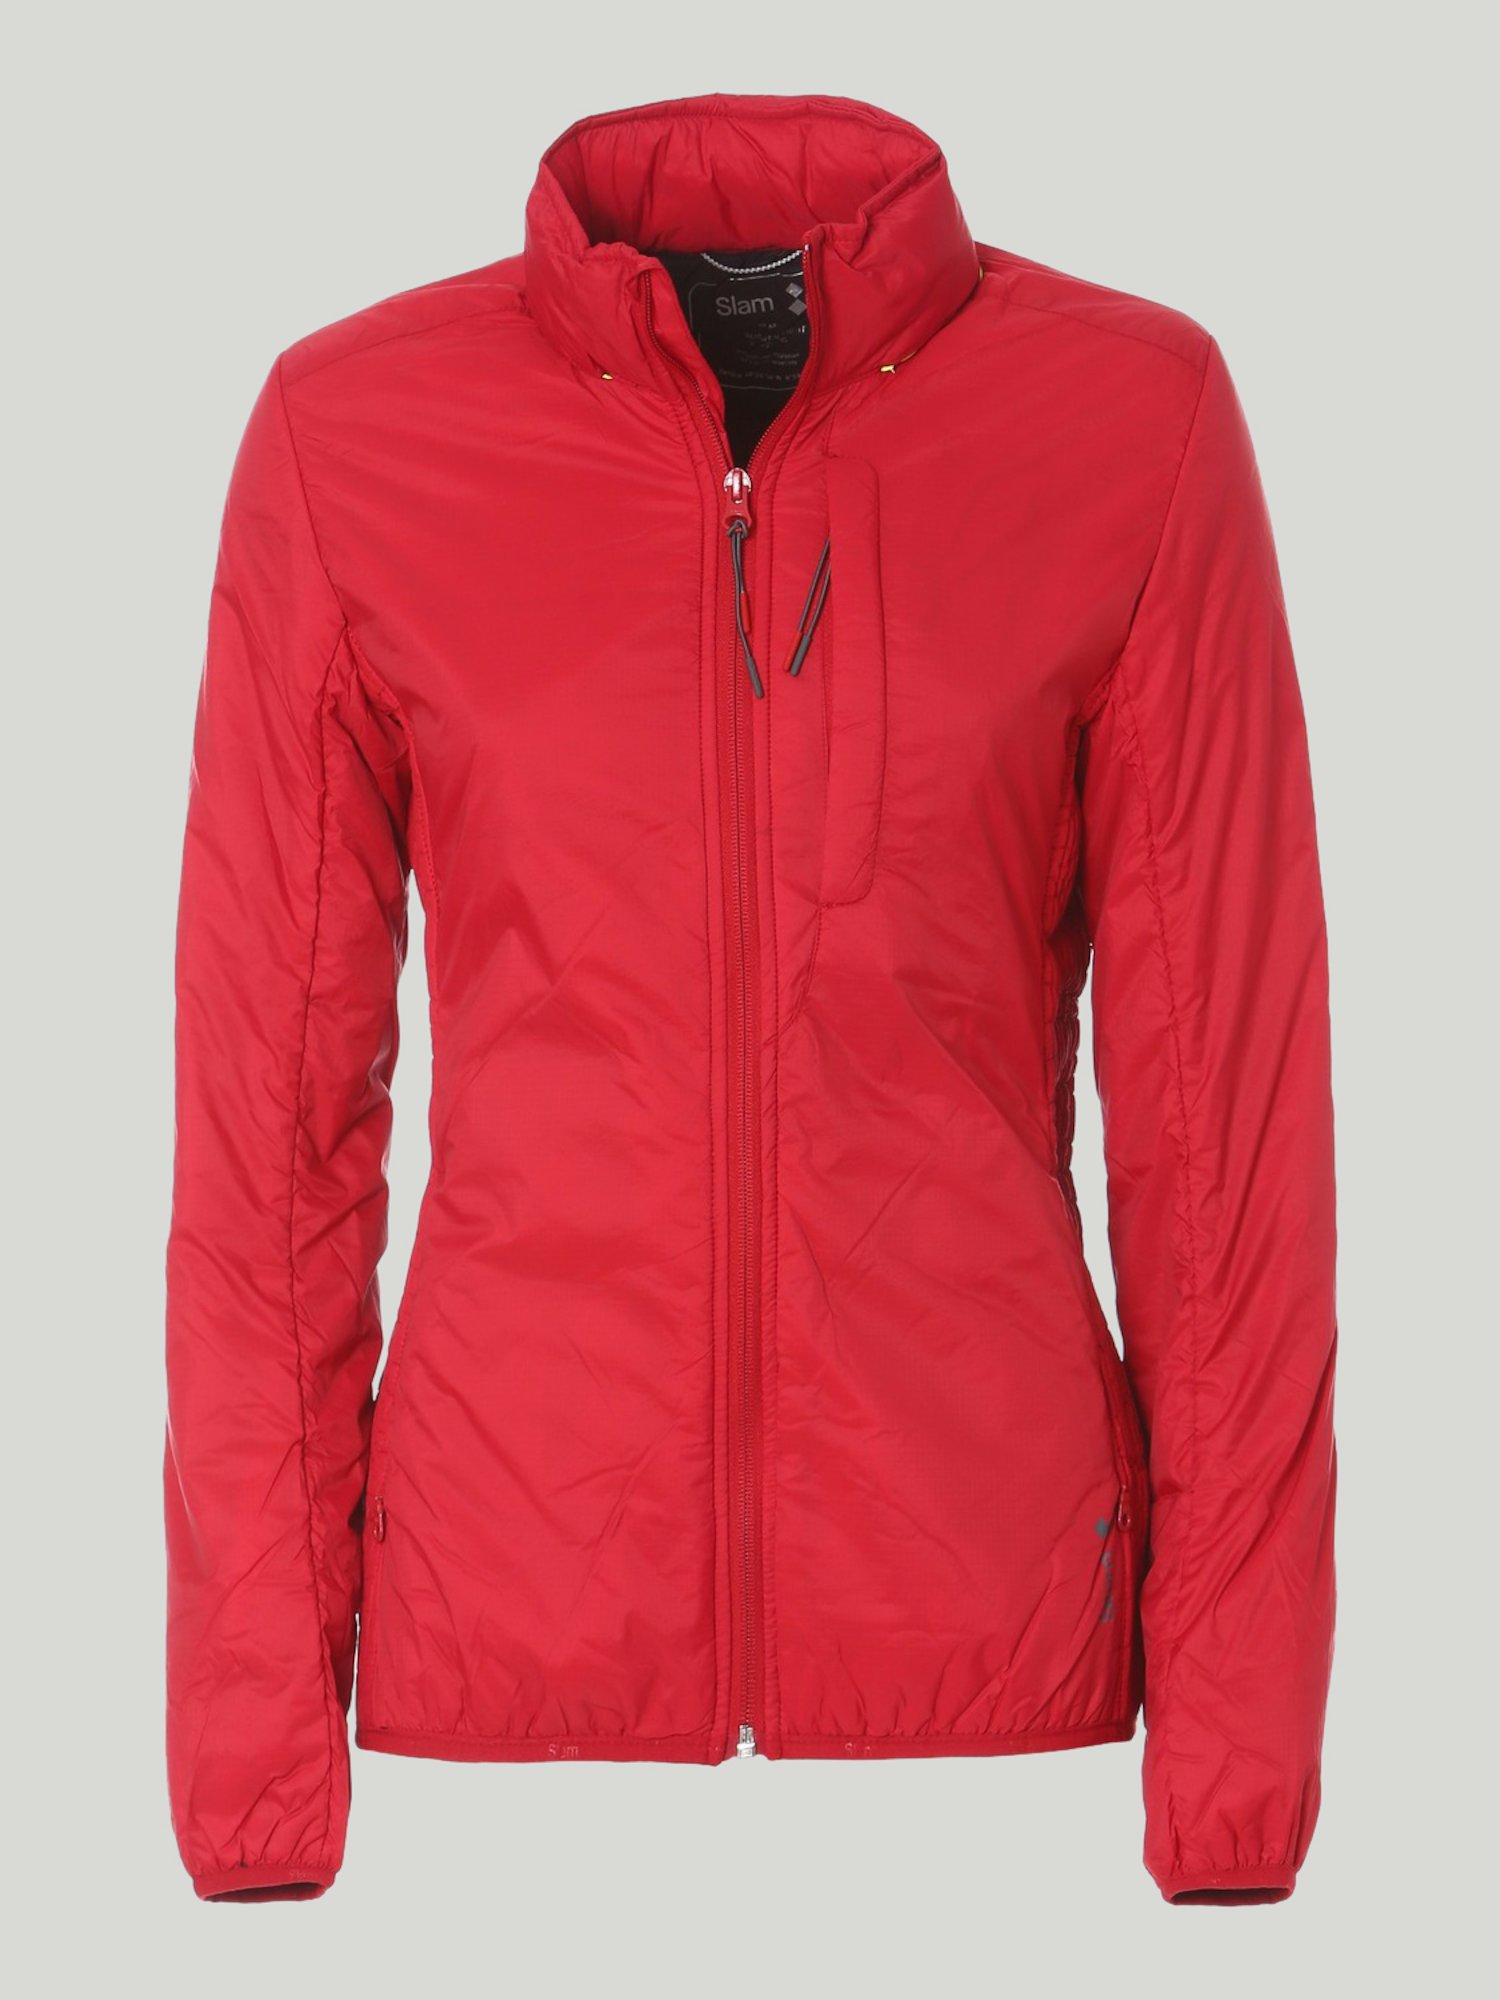 Chaqueta Jkt Blow W'S Evo - Chili Red